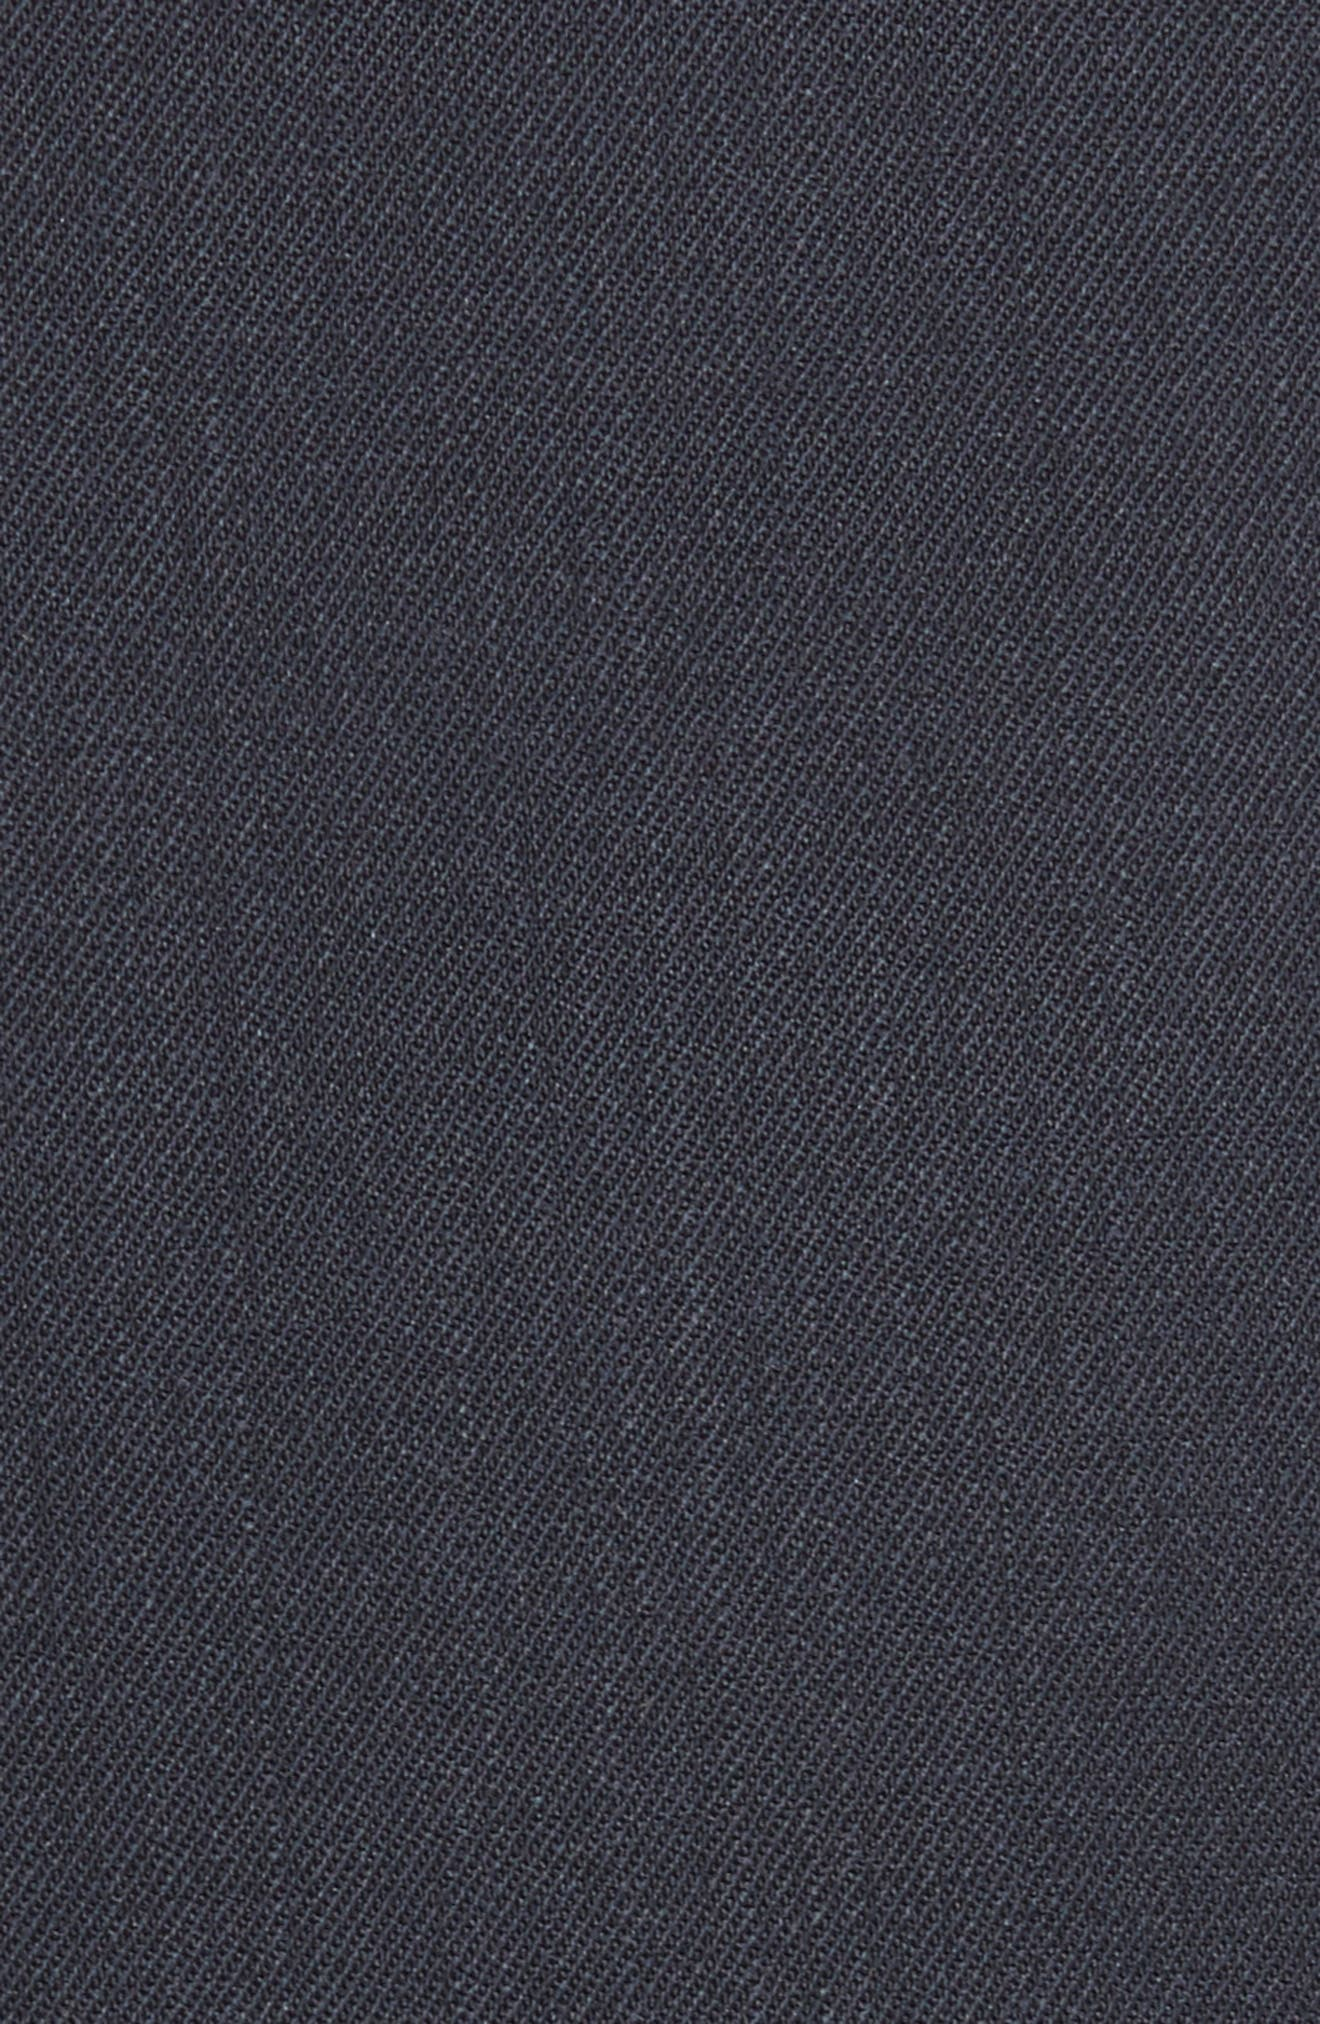 Alternate Image 3  - Lafayette 148 New York Irving Stretch Wool Pants (Nordstrom Exclusive)